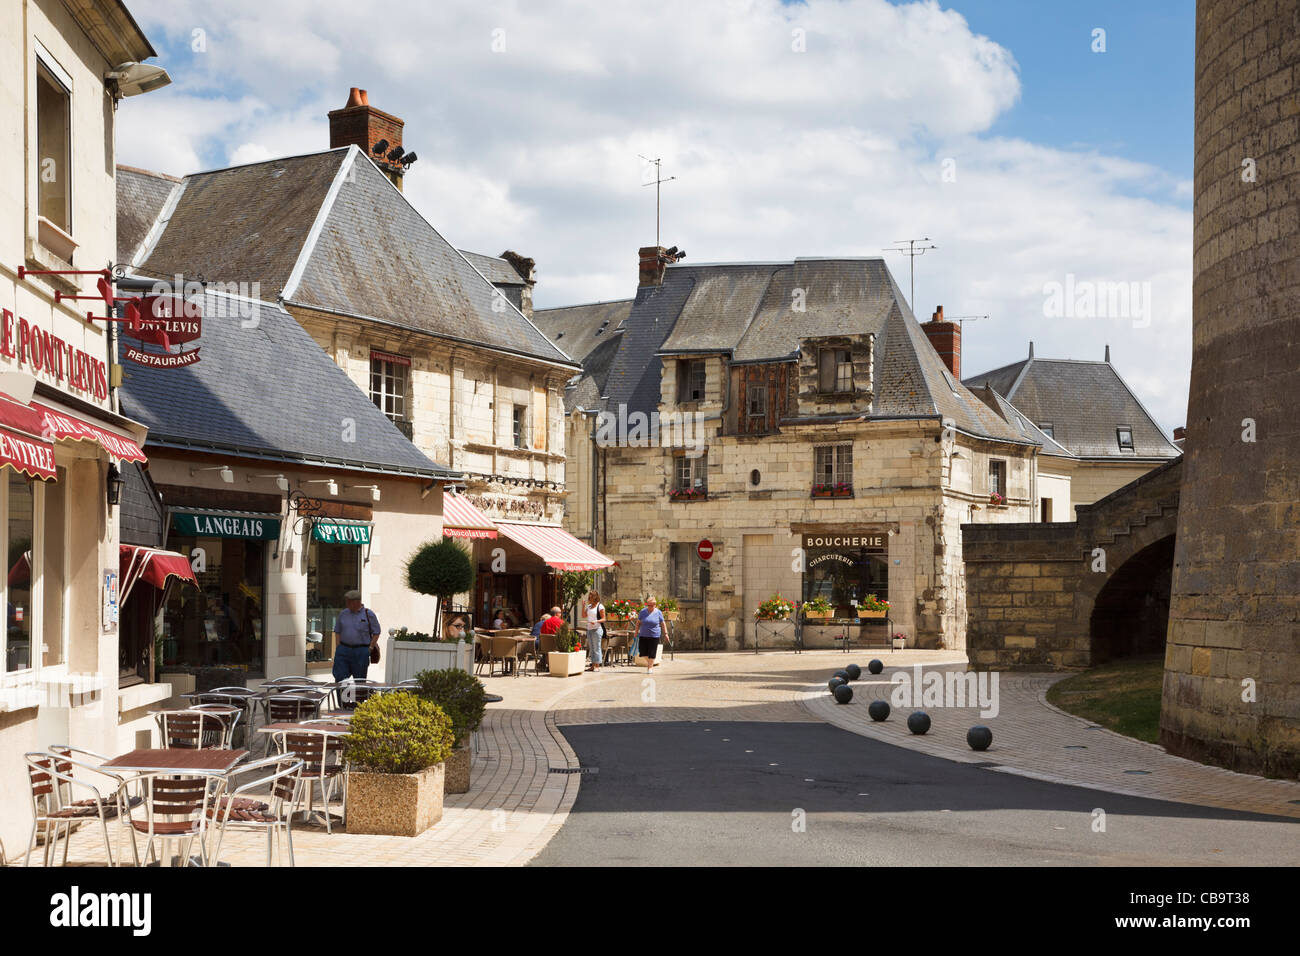 Loire Valley, France - Langeais town centre with chateau walls and cafes, Loire Valley, France - Stock Image